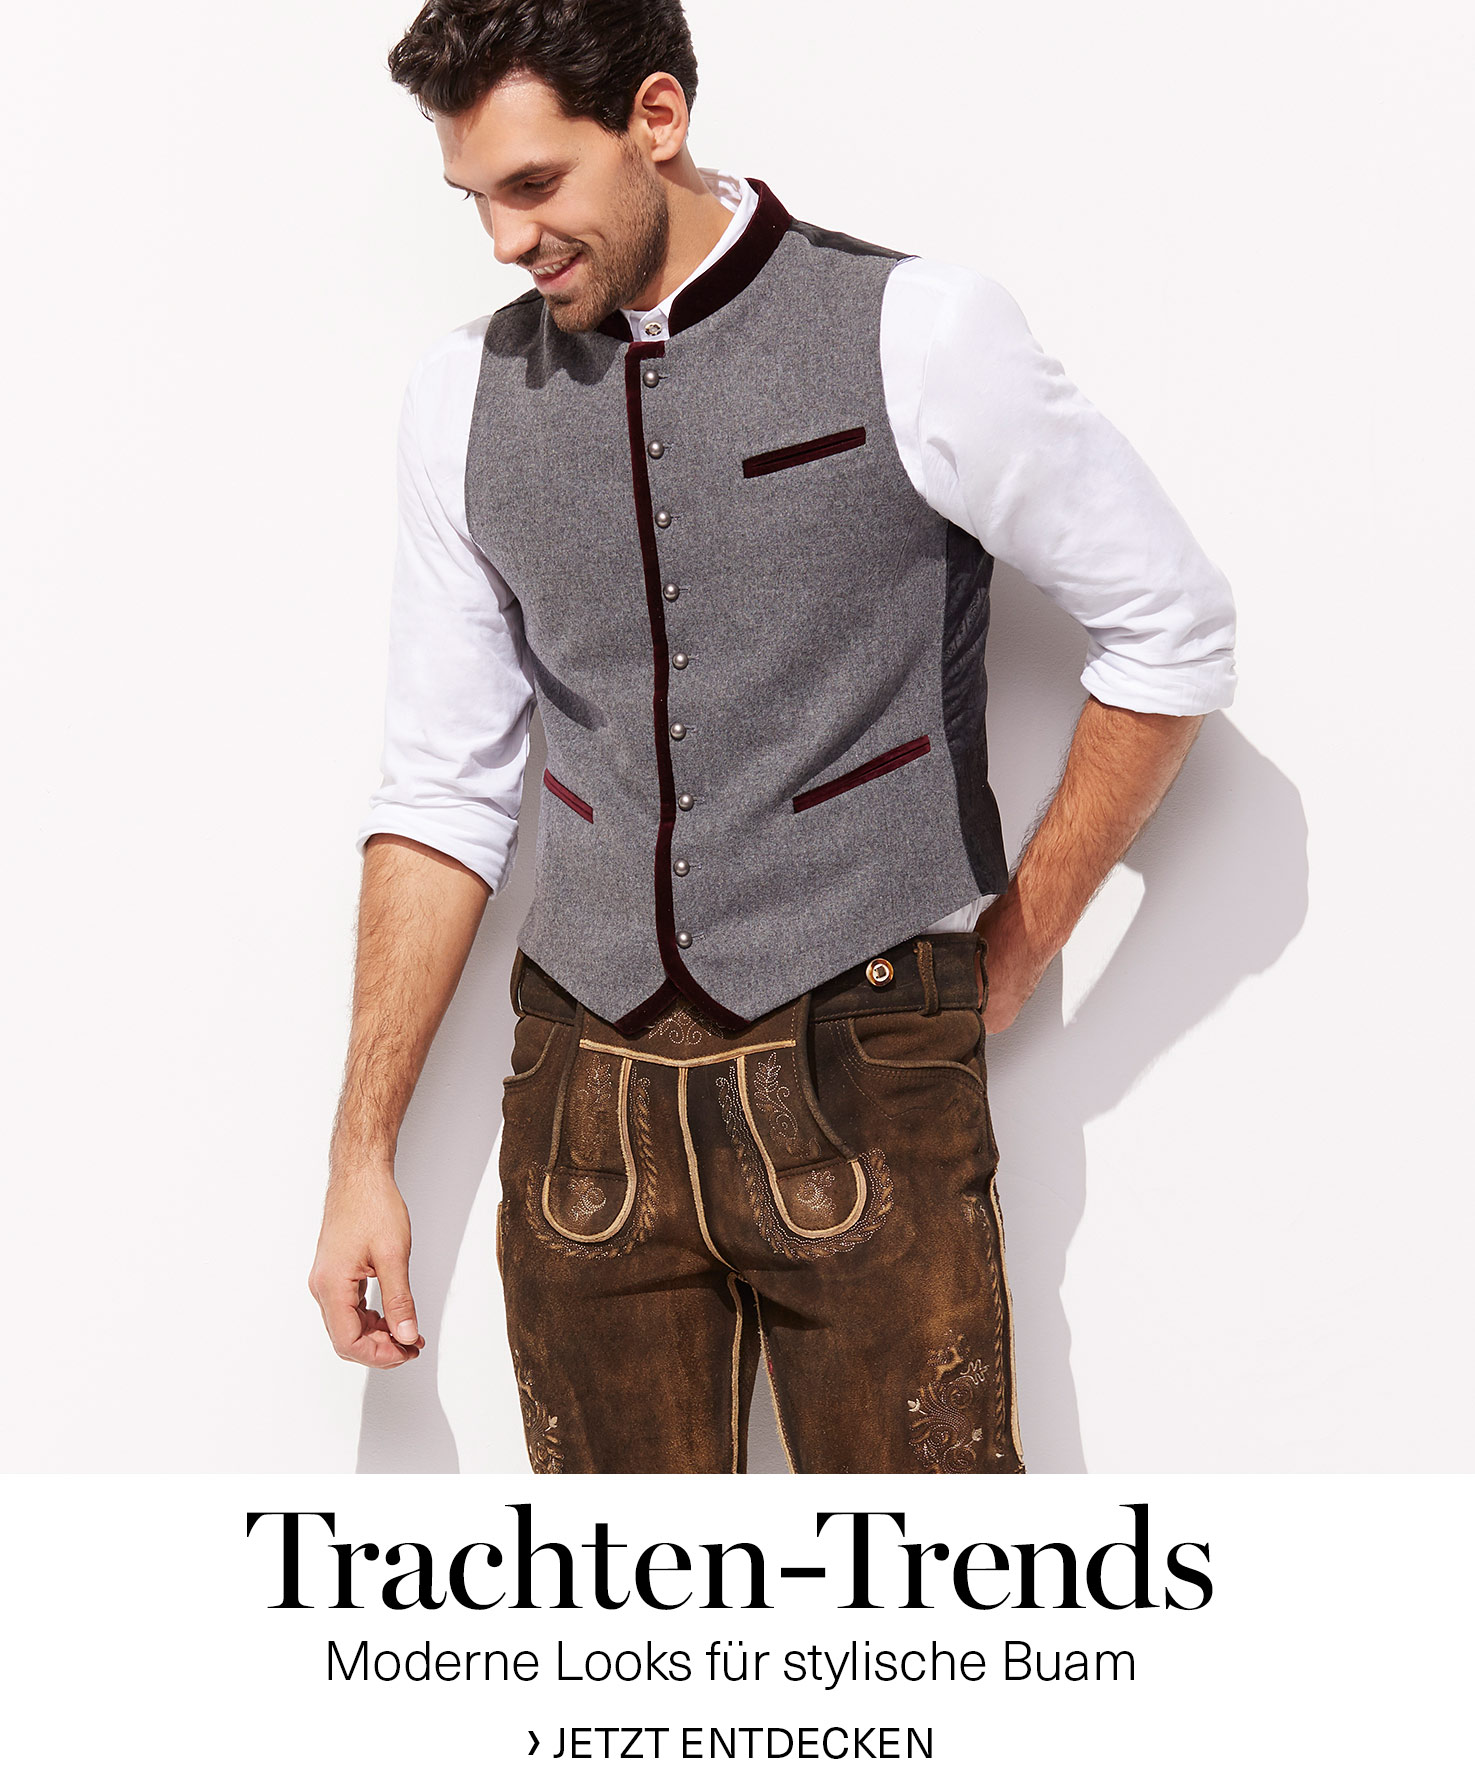 herren trachten bekleidung lederhosen trachtenhemden accessoires trachtenwesten und mehr. Black Bedroom Furniture Sets. Home Design Ideas